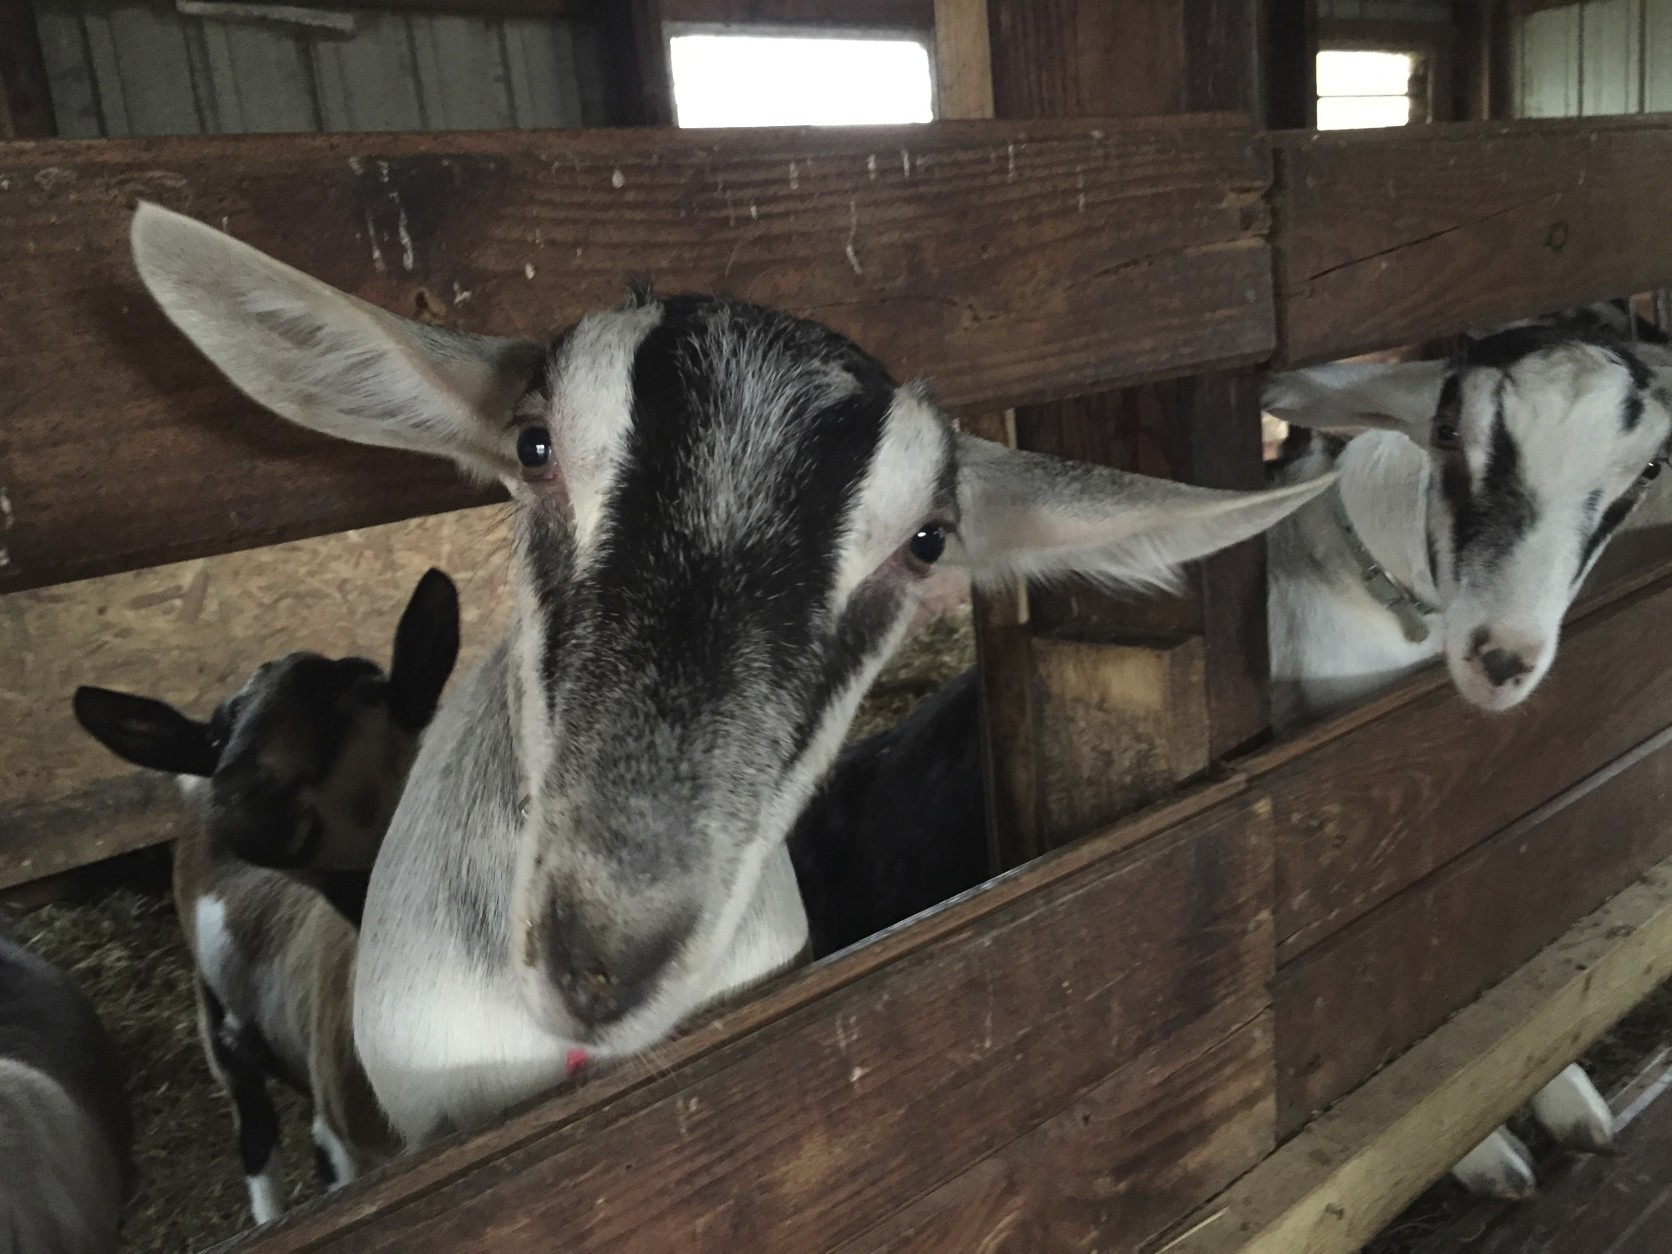 Goats are curious, hardy creatures. Kevin's goats can roam his property and are eager to greet visitors. (WTOP/Kate Ryan)